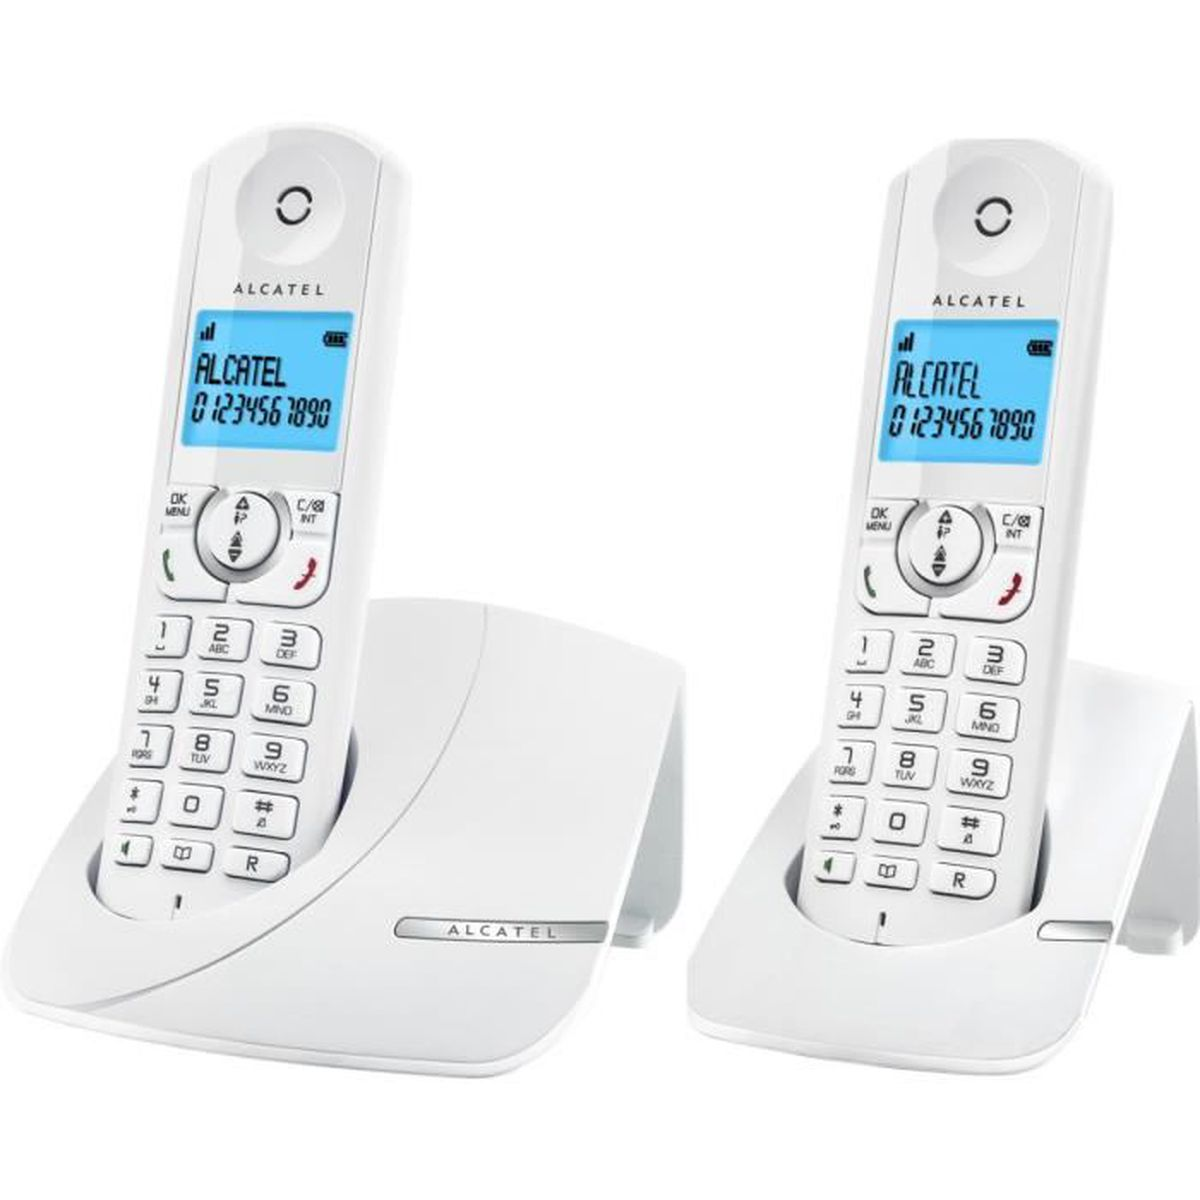 telephone duo alcatel achat vente telephone duo alcatel pas cher les soldes sur cdiscount. Black Bedroom Furniture Sets. Home Design Ideas